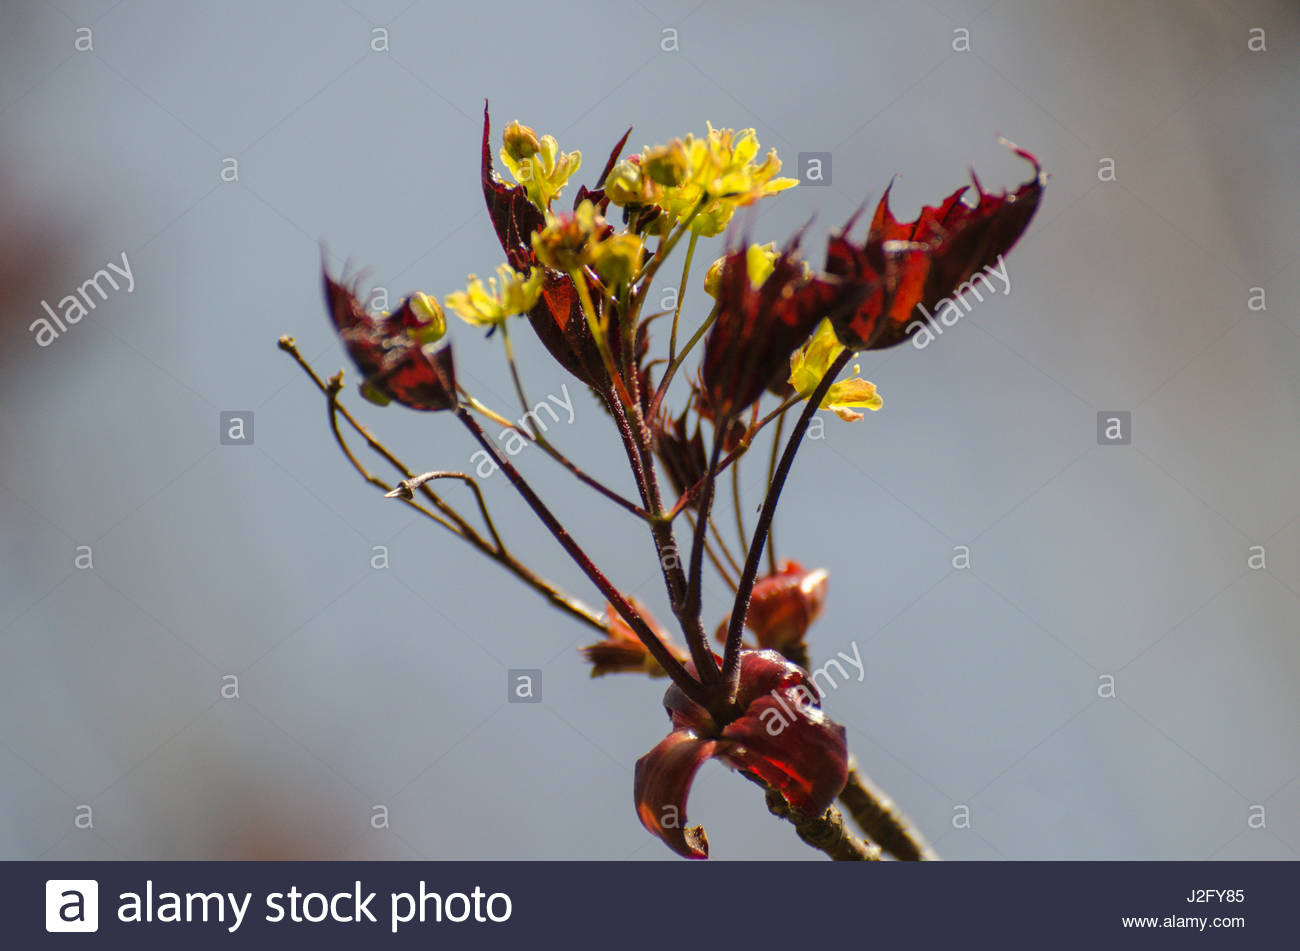 First leaves on the Maple tree, Acer platanoides 'Schwedleri' - Stock Image